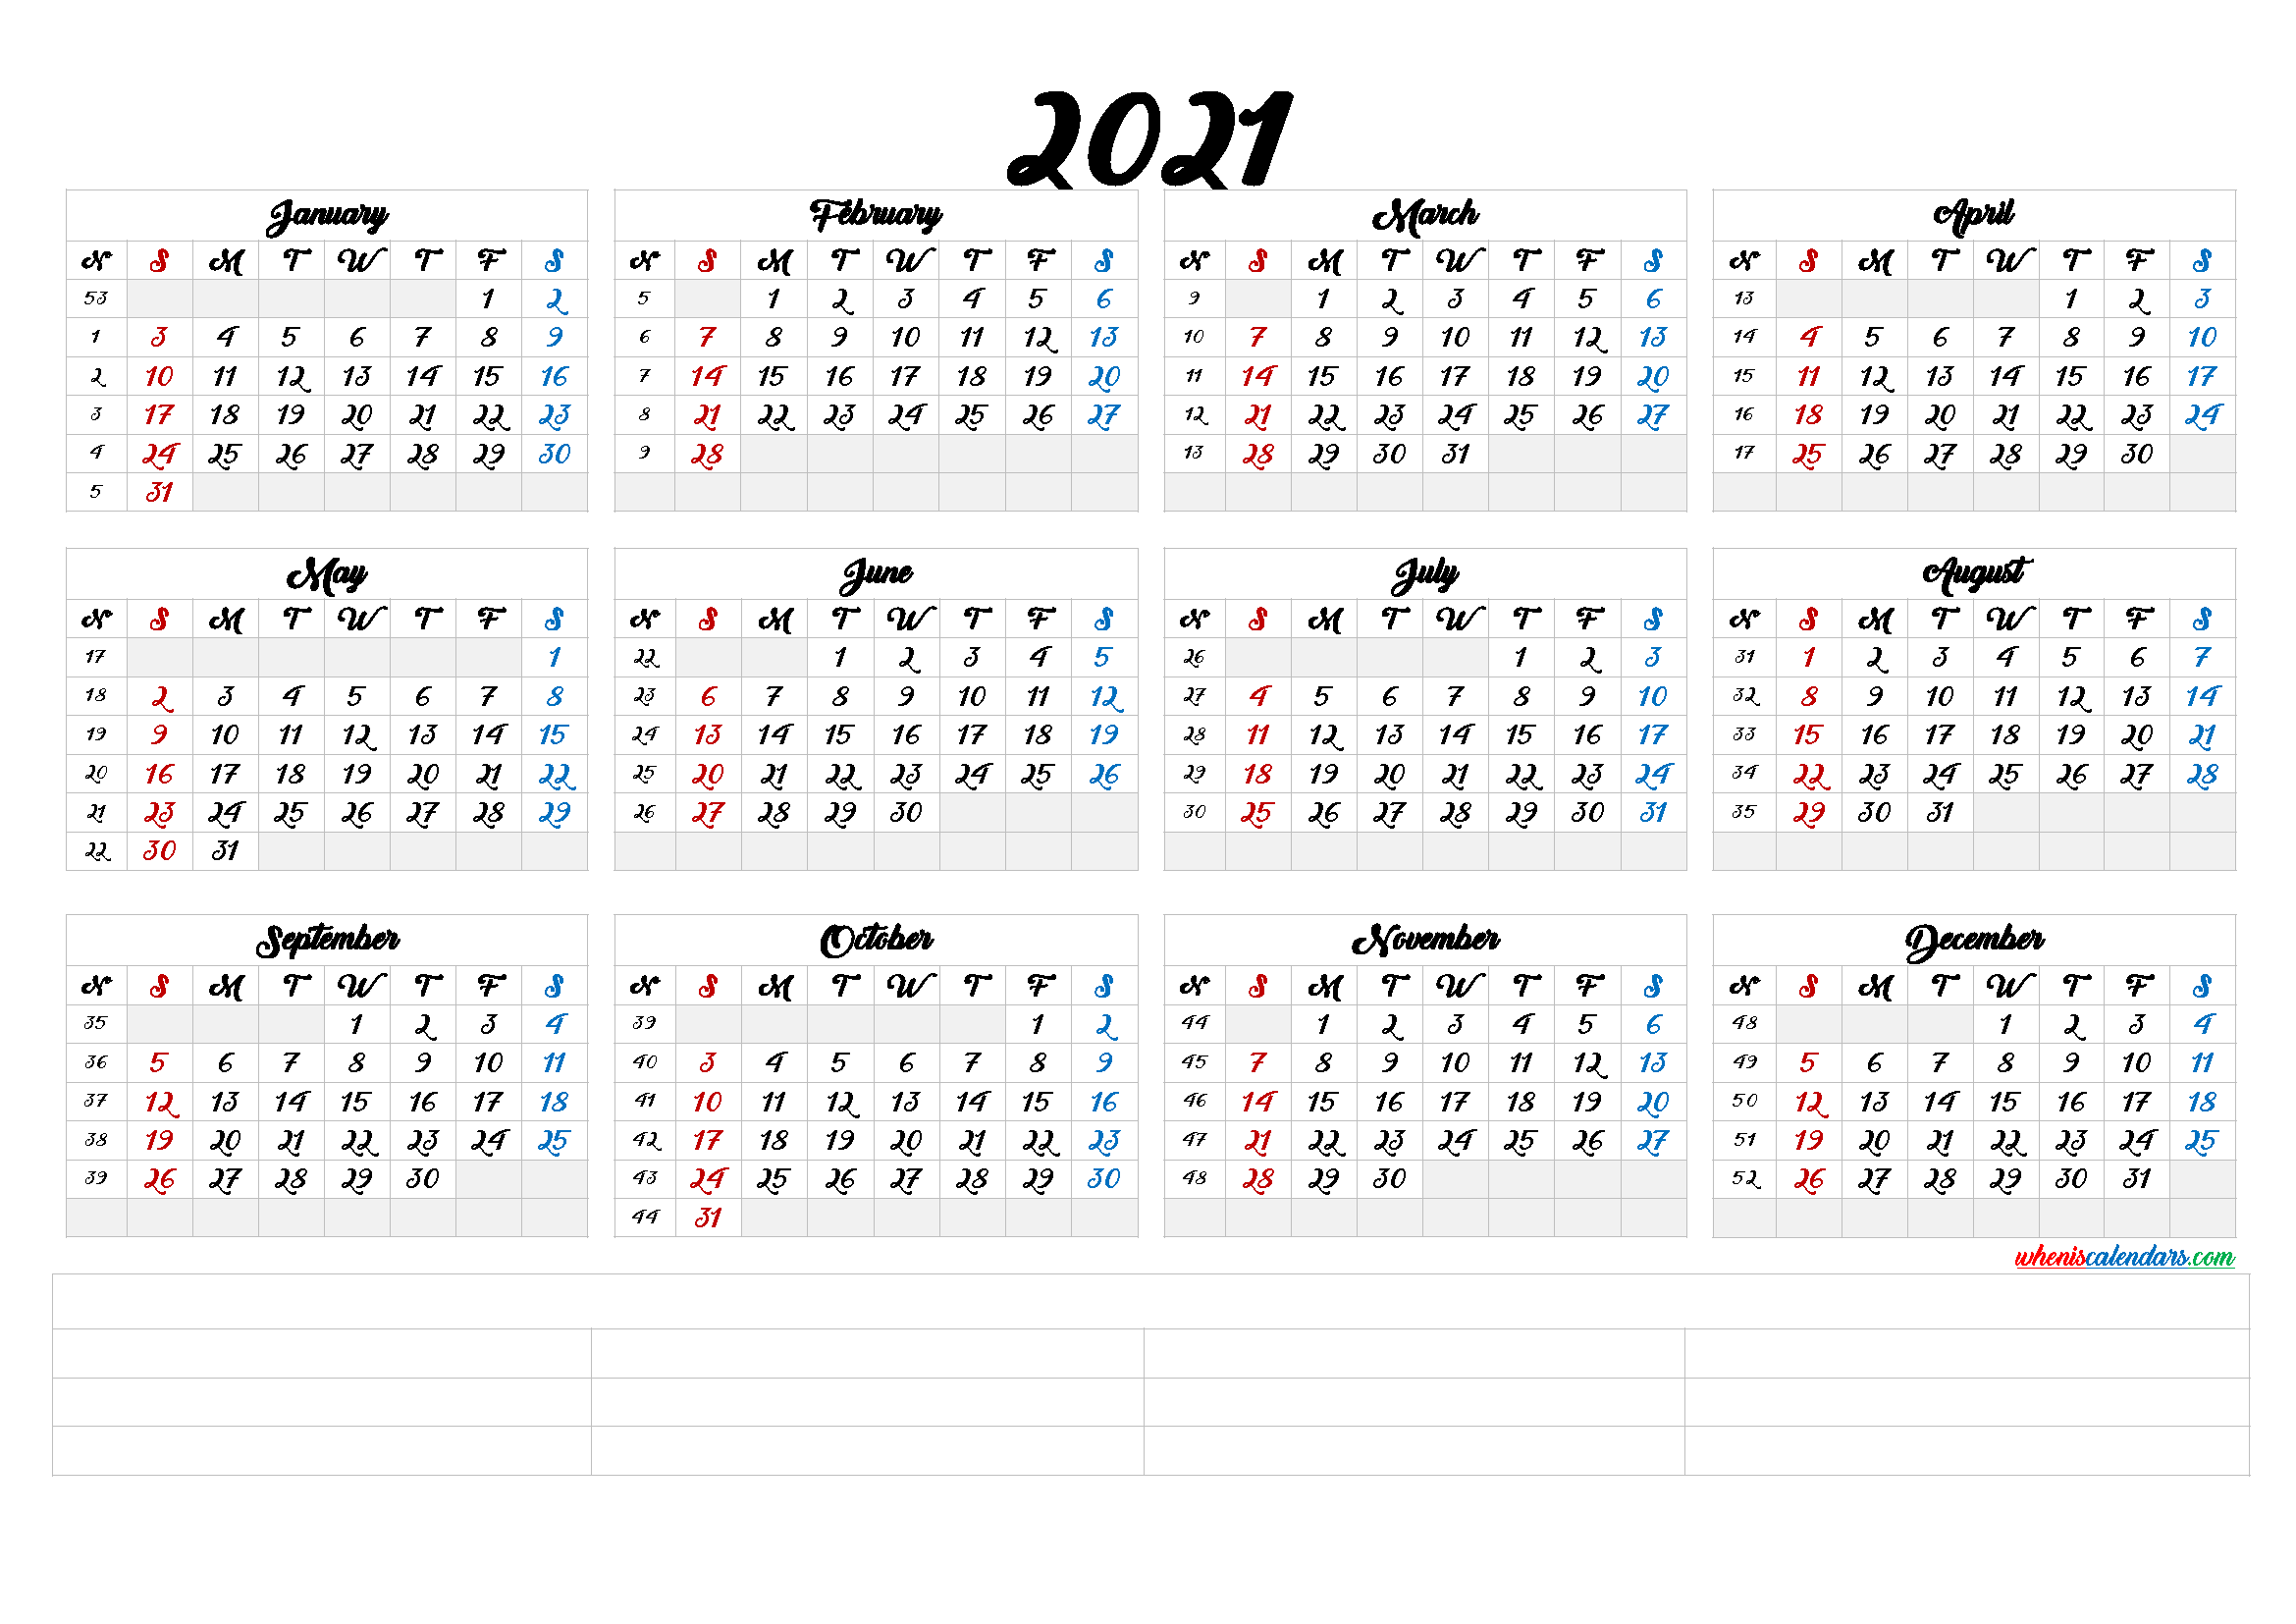 2021 Calendar With Week Number Printable Free : 2021 ...